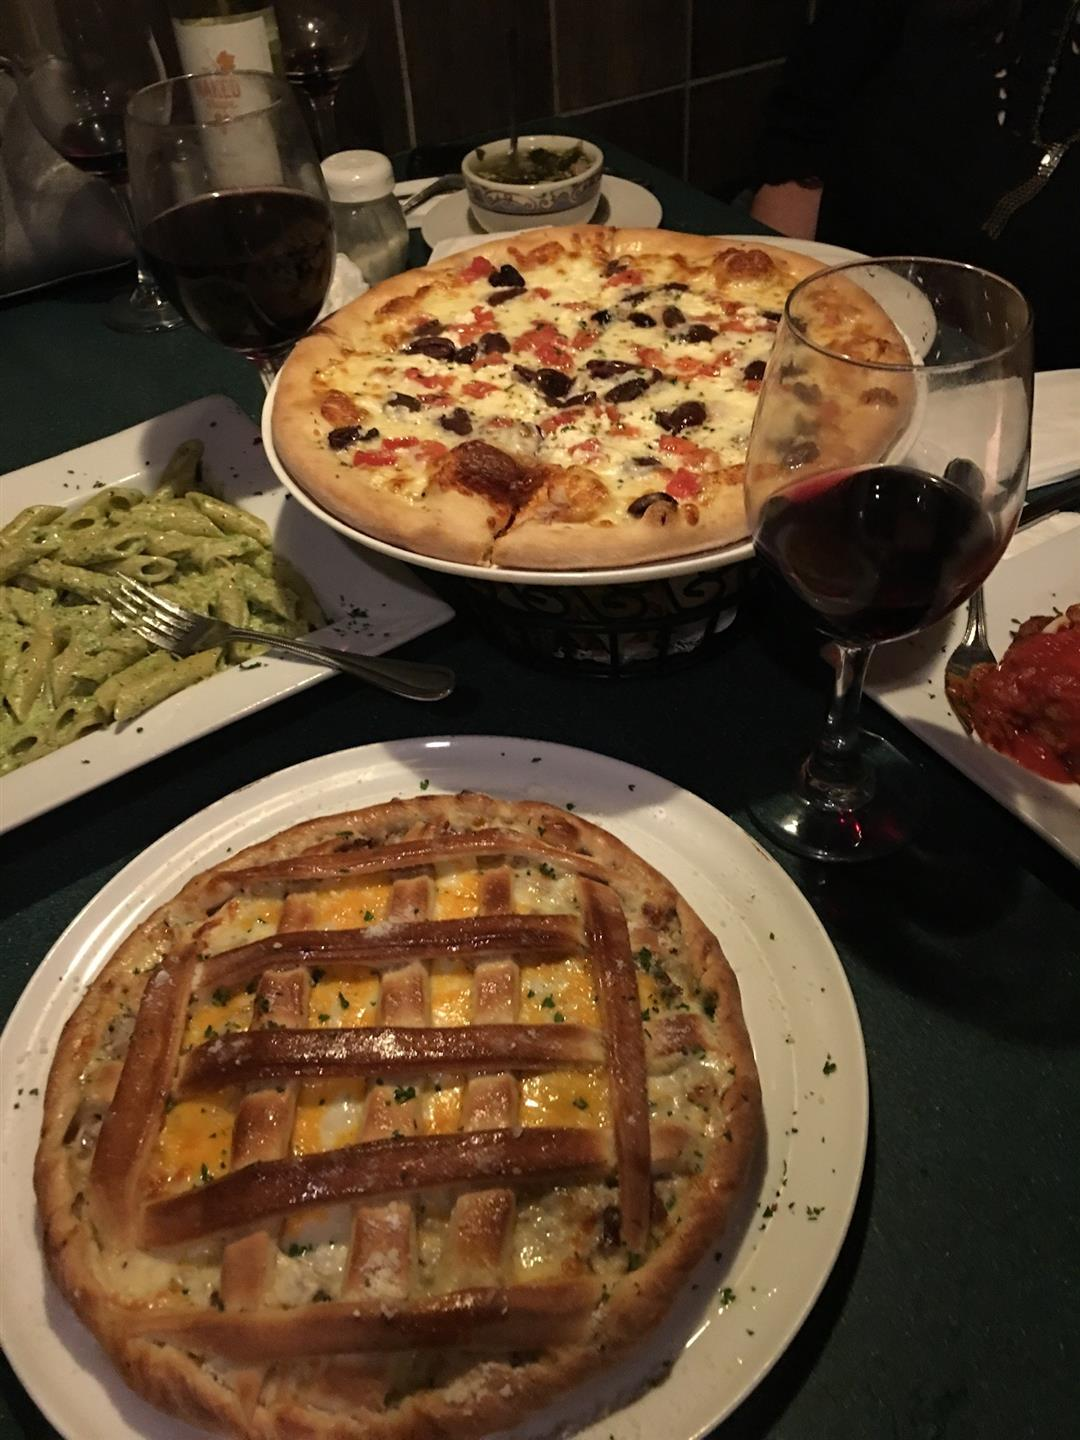 assorted pizzas and pastas on a table